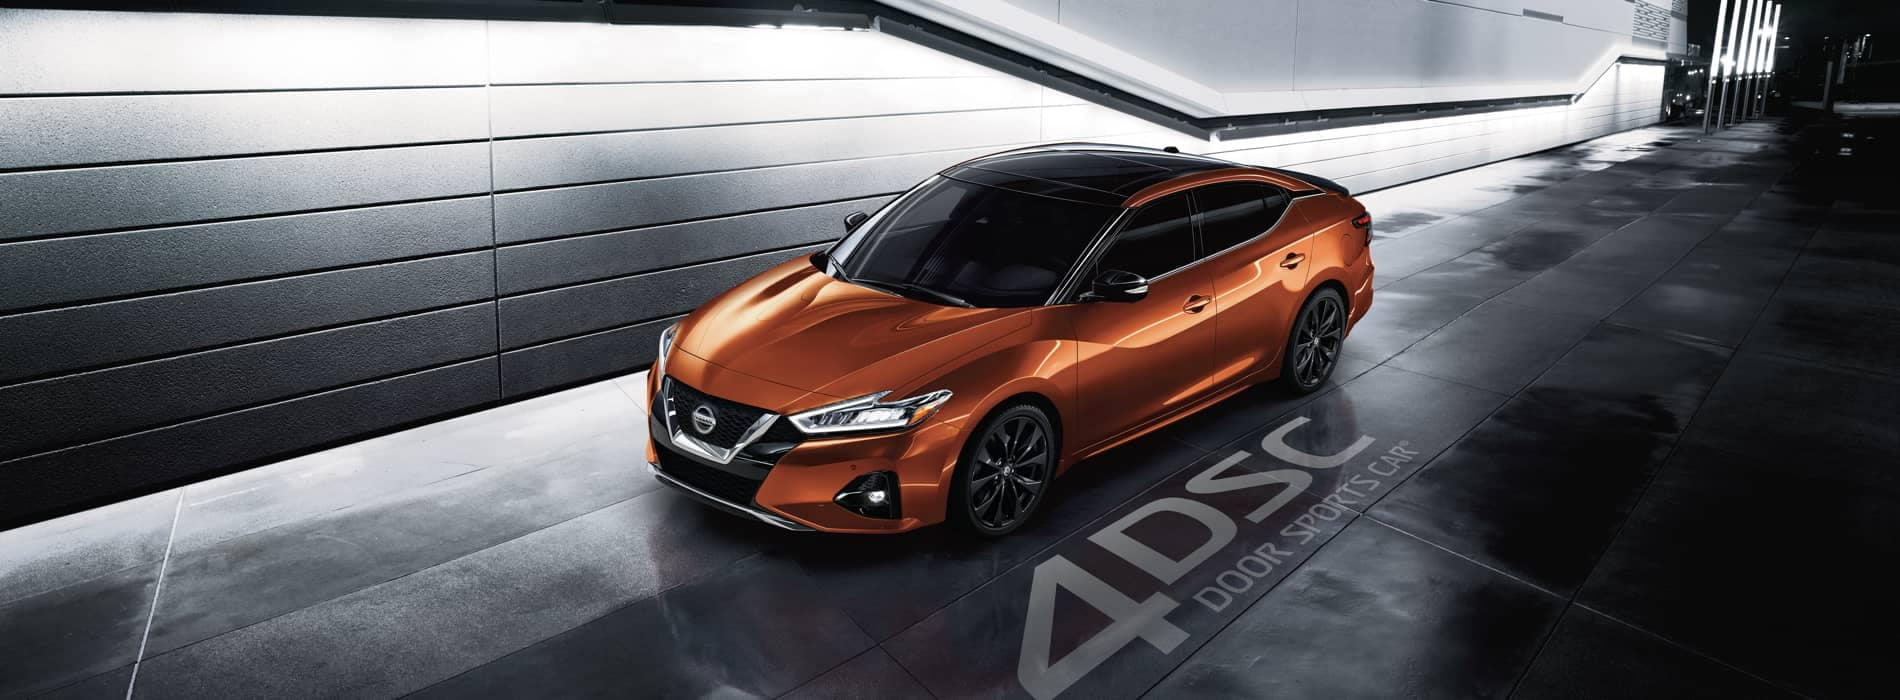 2020 Maxima parked by modern building at night